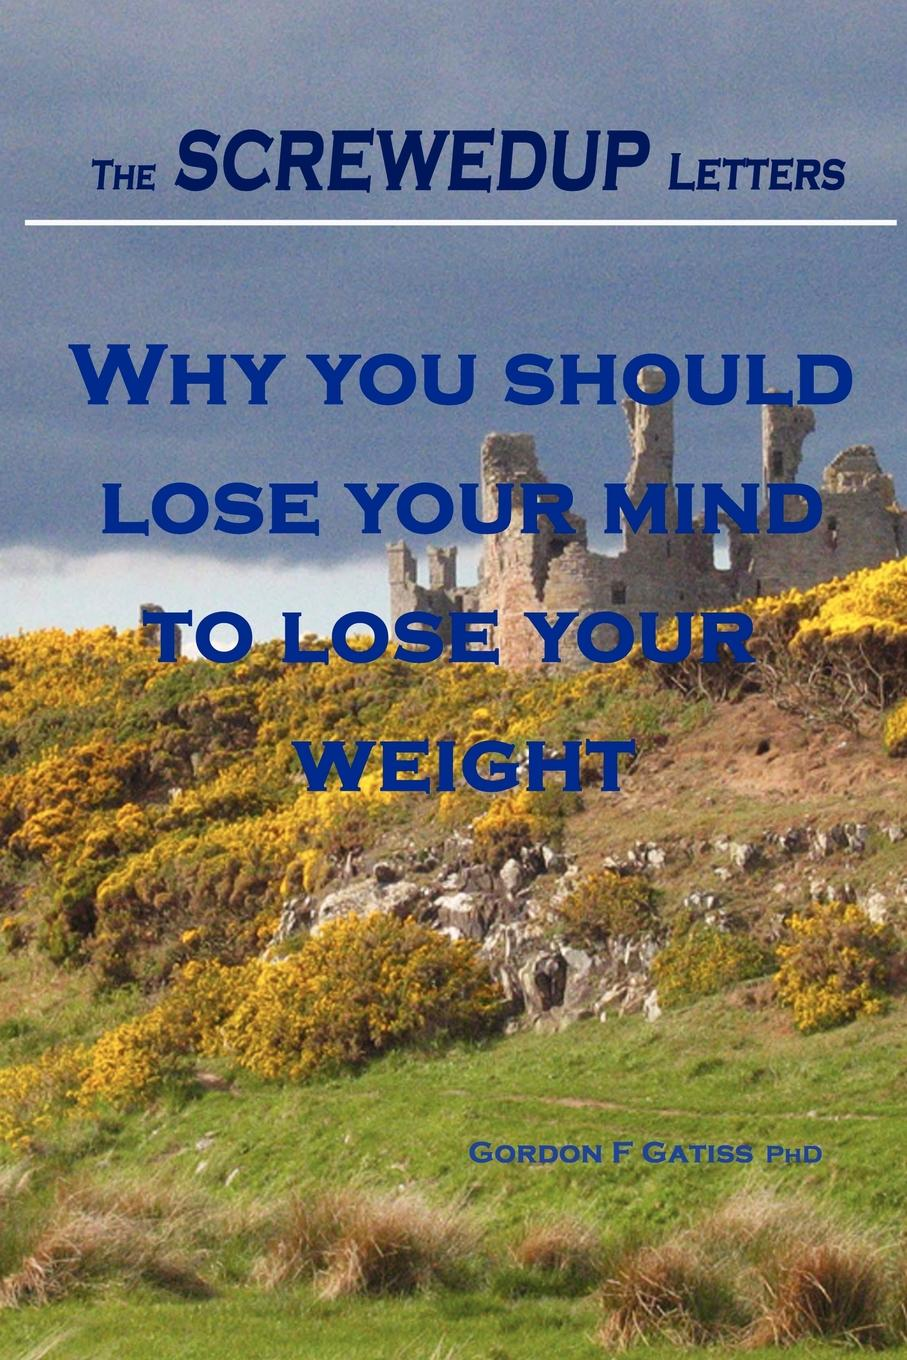 Gordon F. Gatiss The Screwedup Letters. Why You Should Lose Your Mind to Lose Your Weight pat mesiti the $1 million reason to change your mind